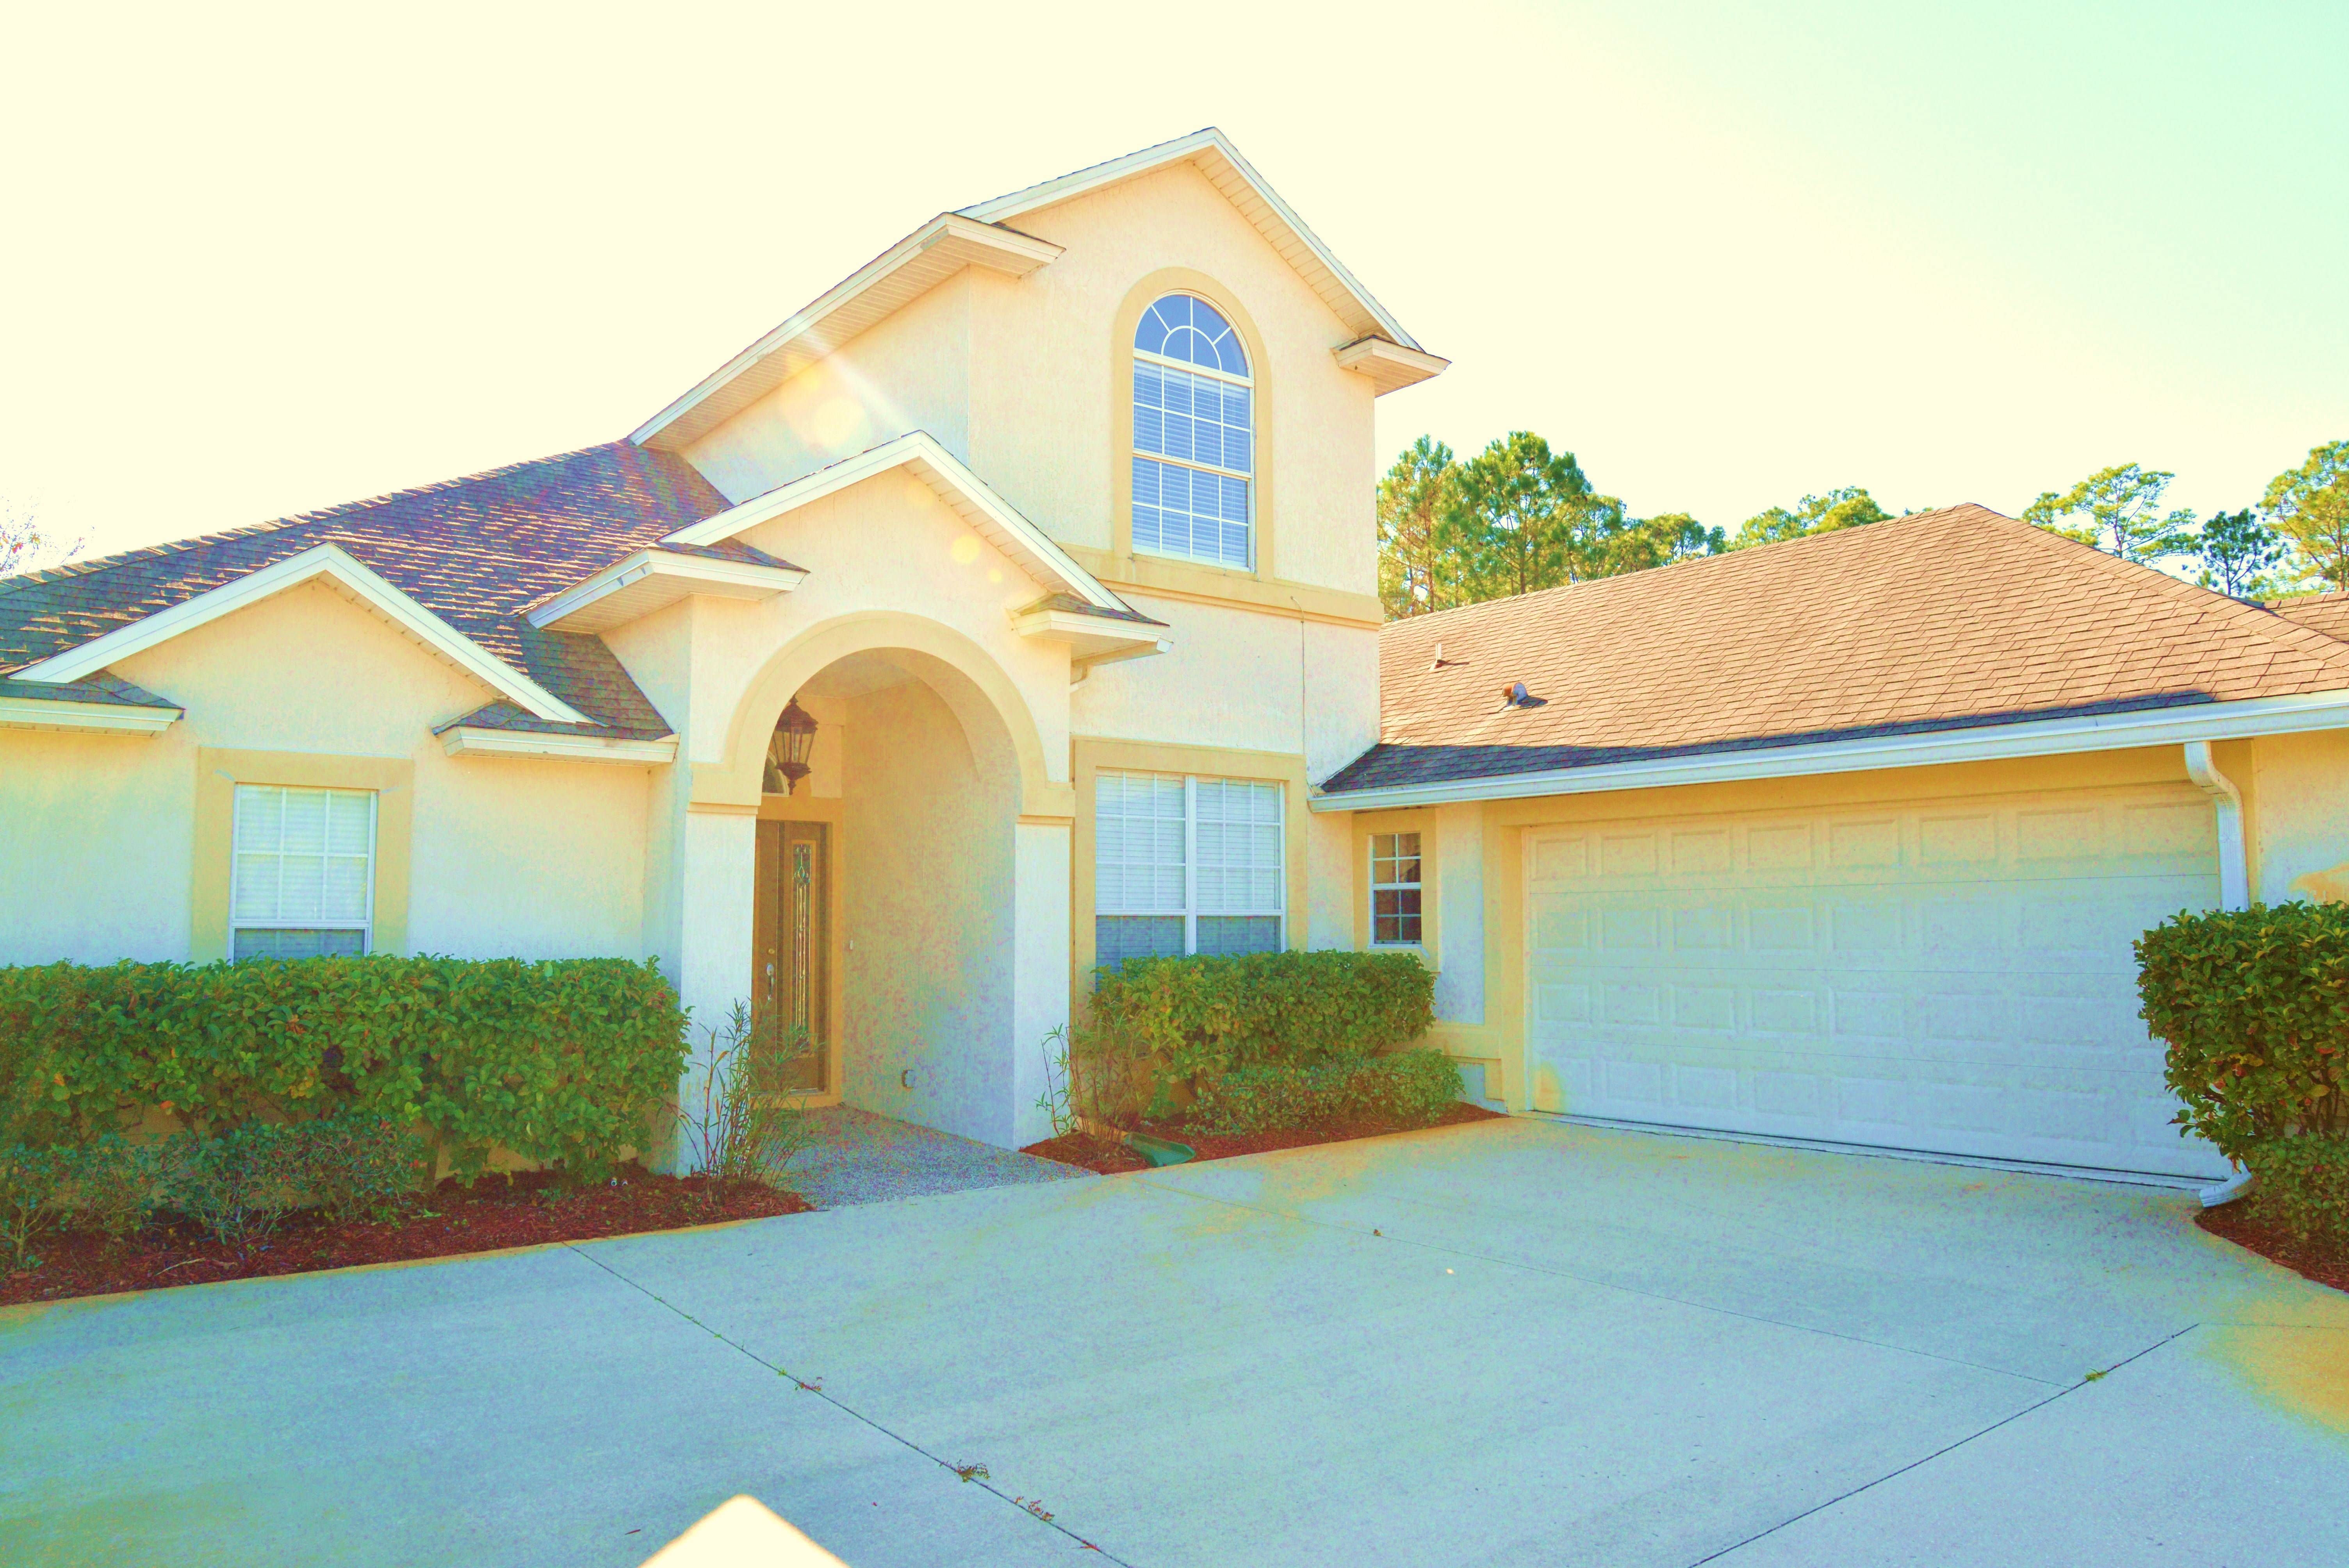 cypress lakes elkton florida homes for sale